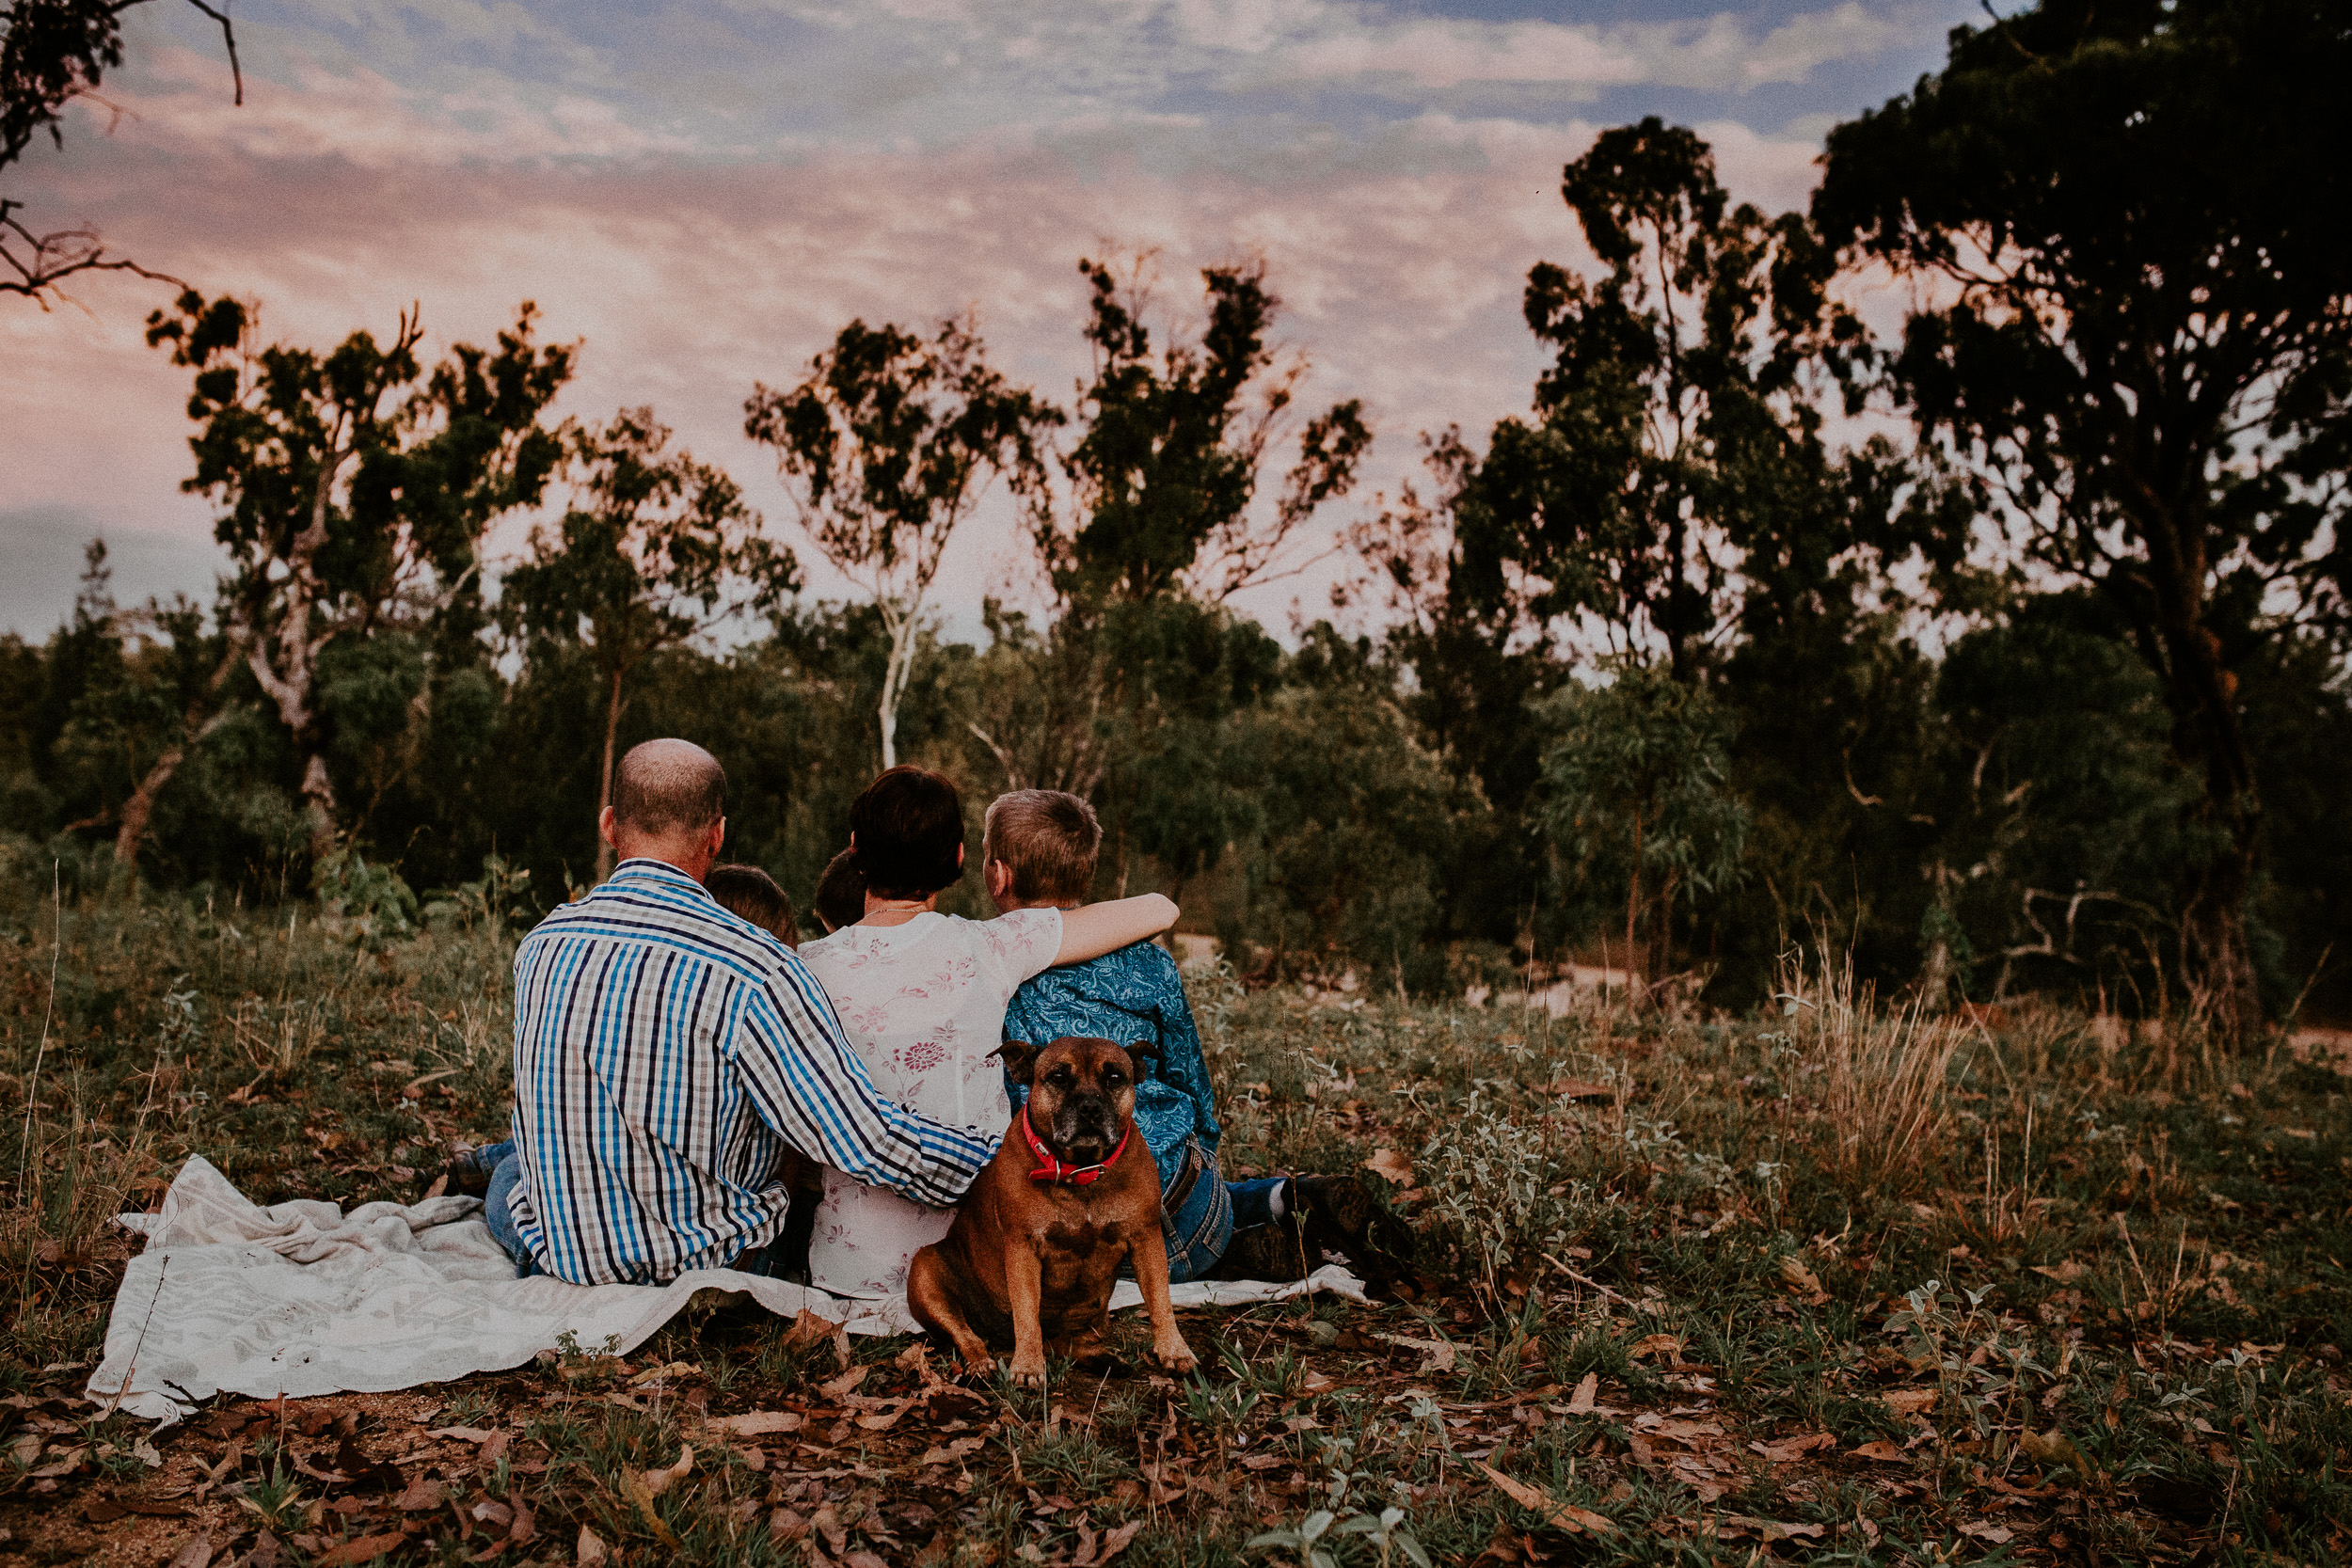 Baby-outdoor-family-lifetsyle-townsville-inhome-queensland-bush-cairns-candid-7.jpg